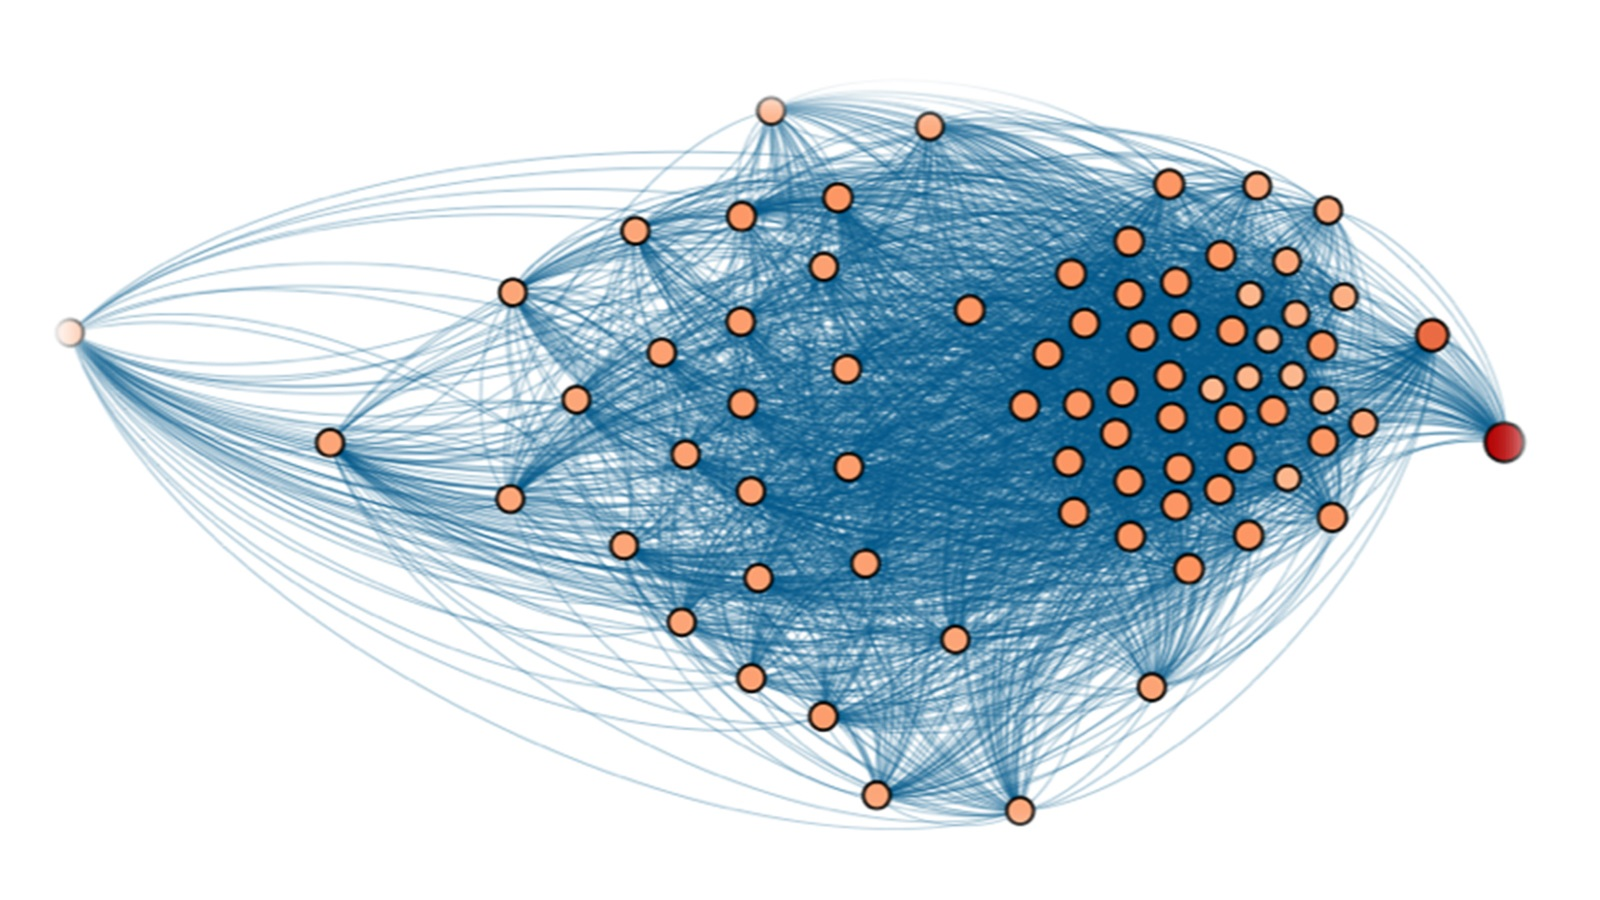 Endogenous contact networks, as generated using the Argonne CityCOVID model. (Image by Argonne National Laboratory.)